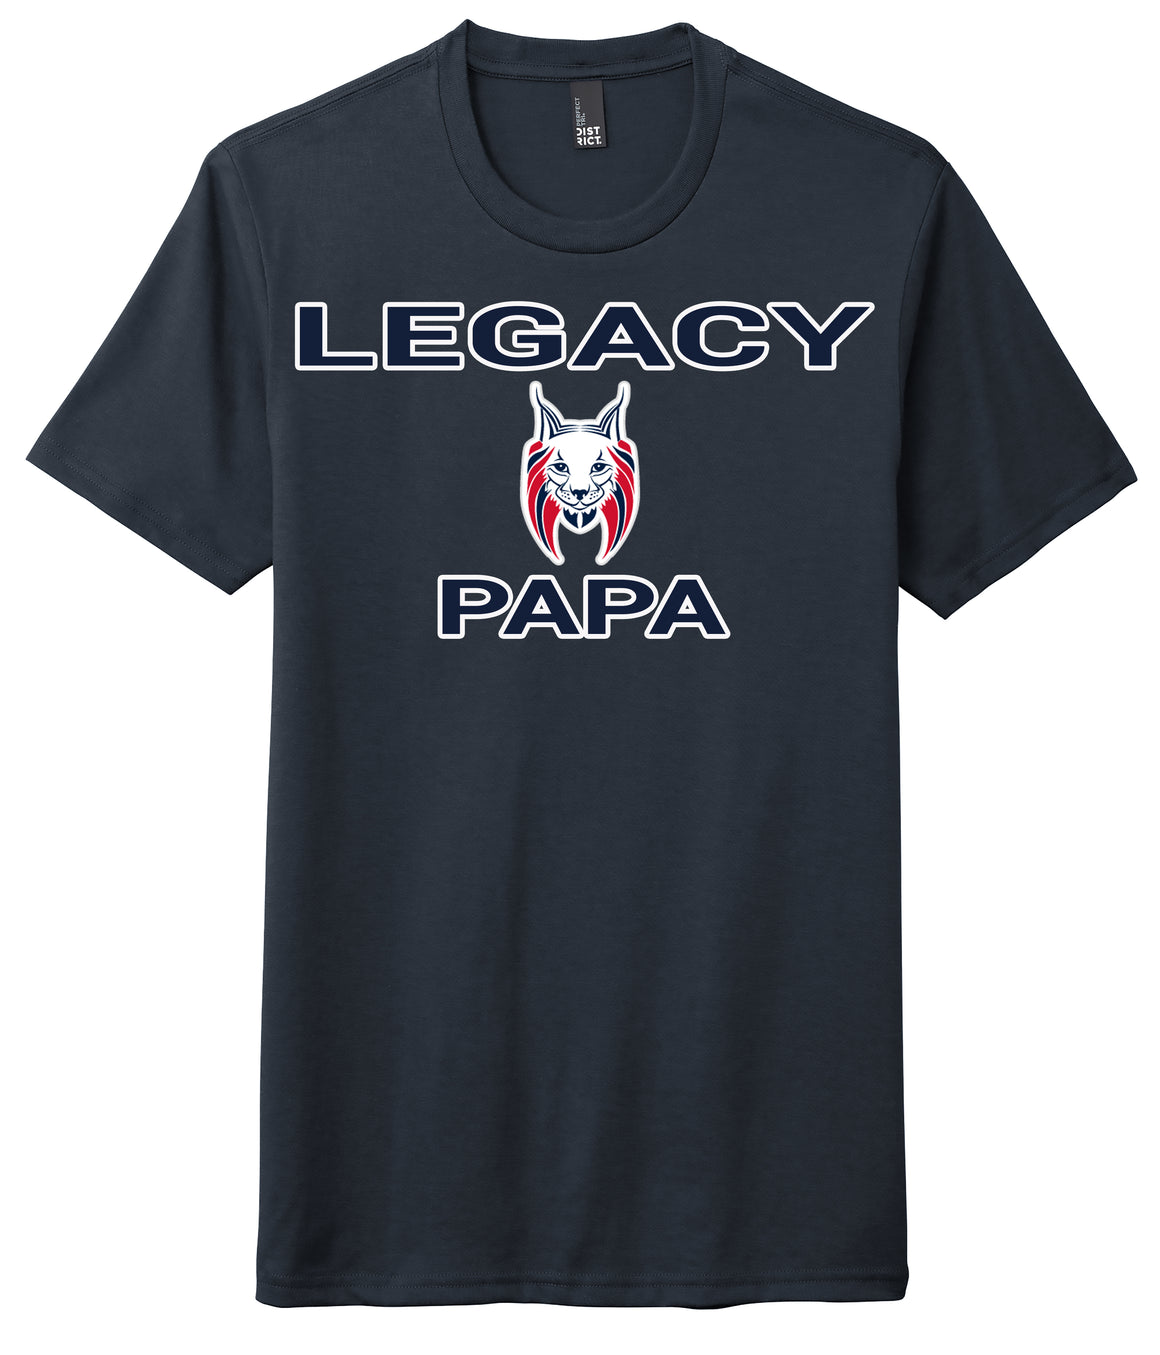 Legacy Traditional School Avondale - Papa Shirt